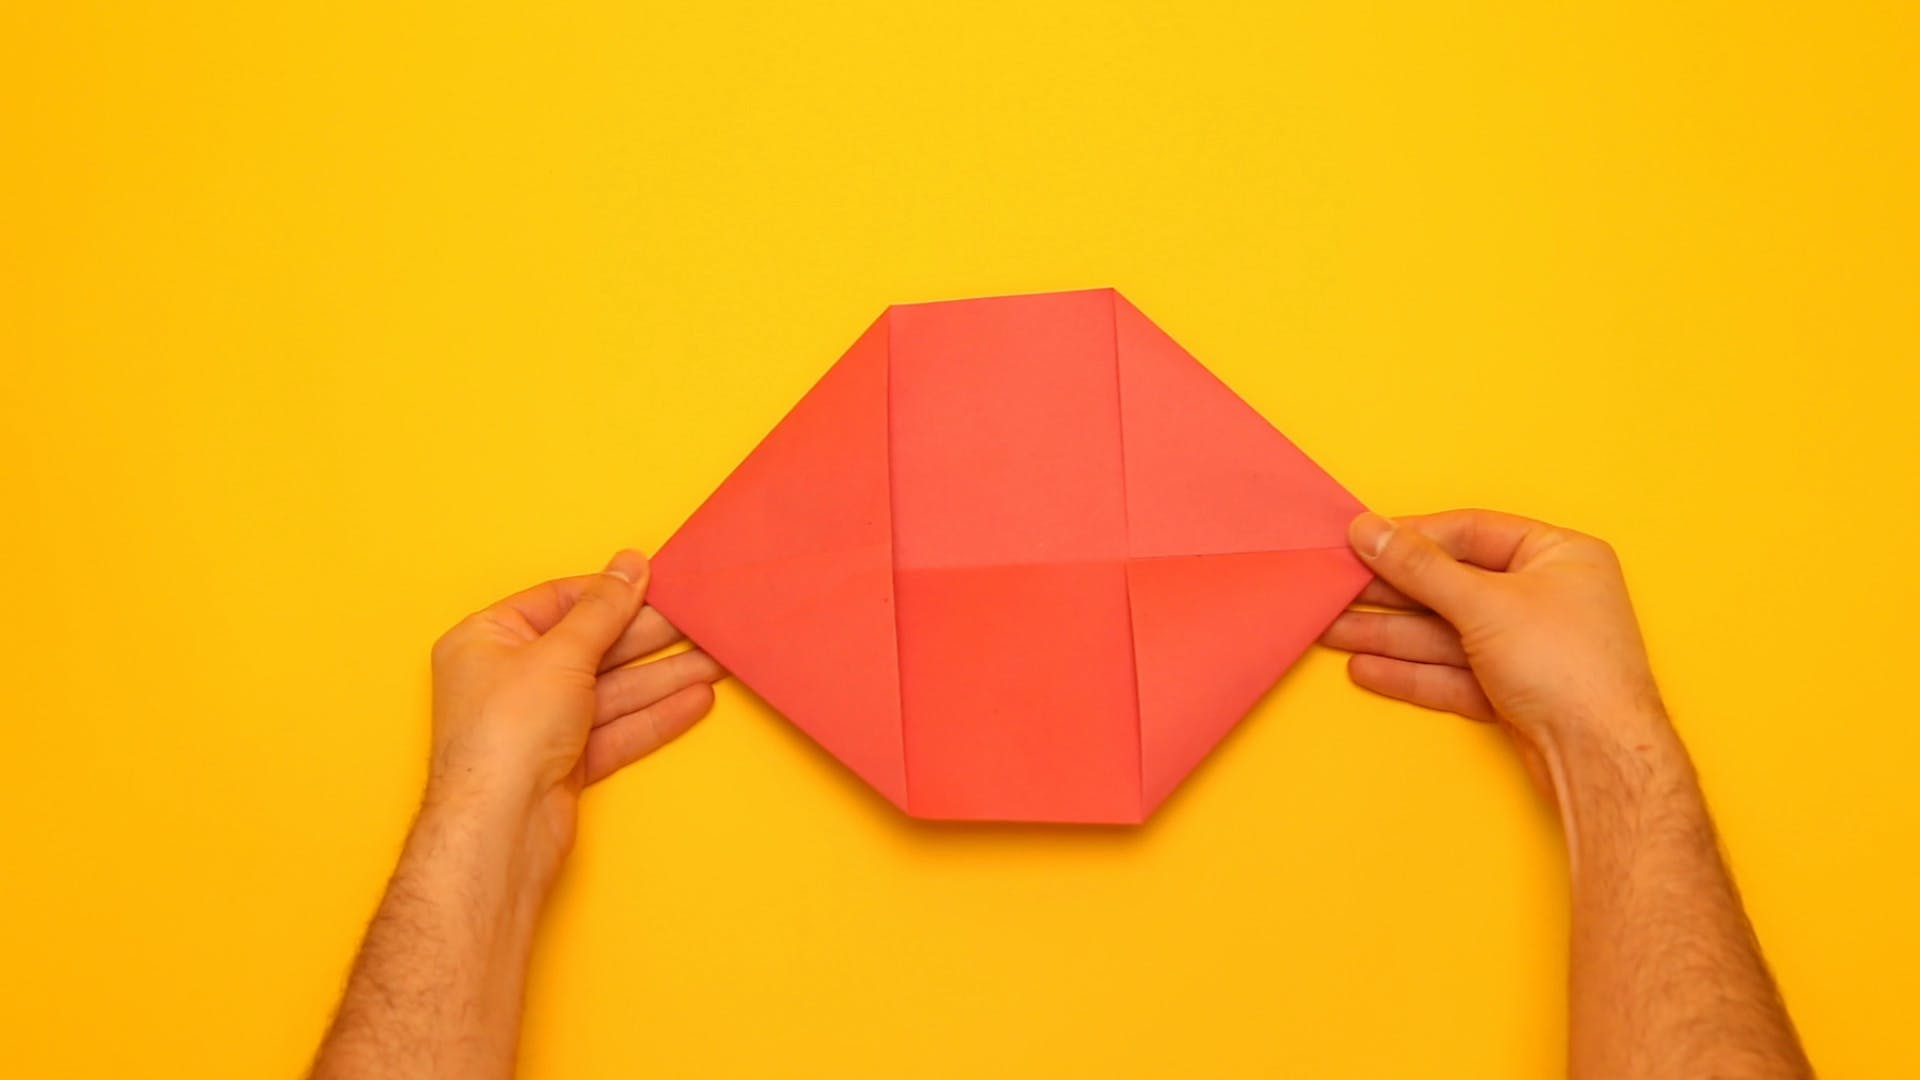 Fold each of the four corners into triangles